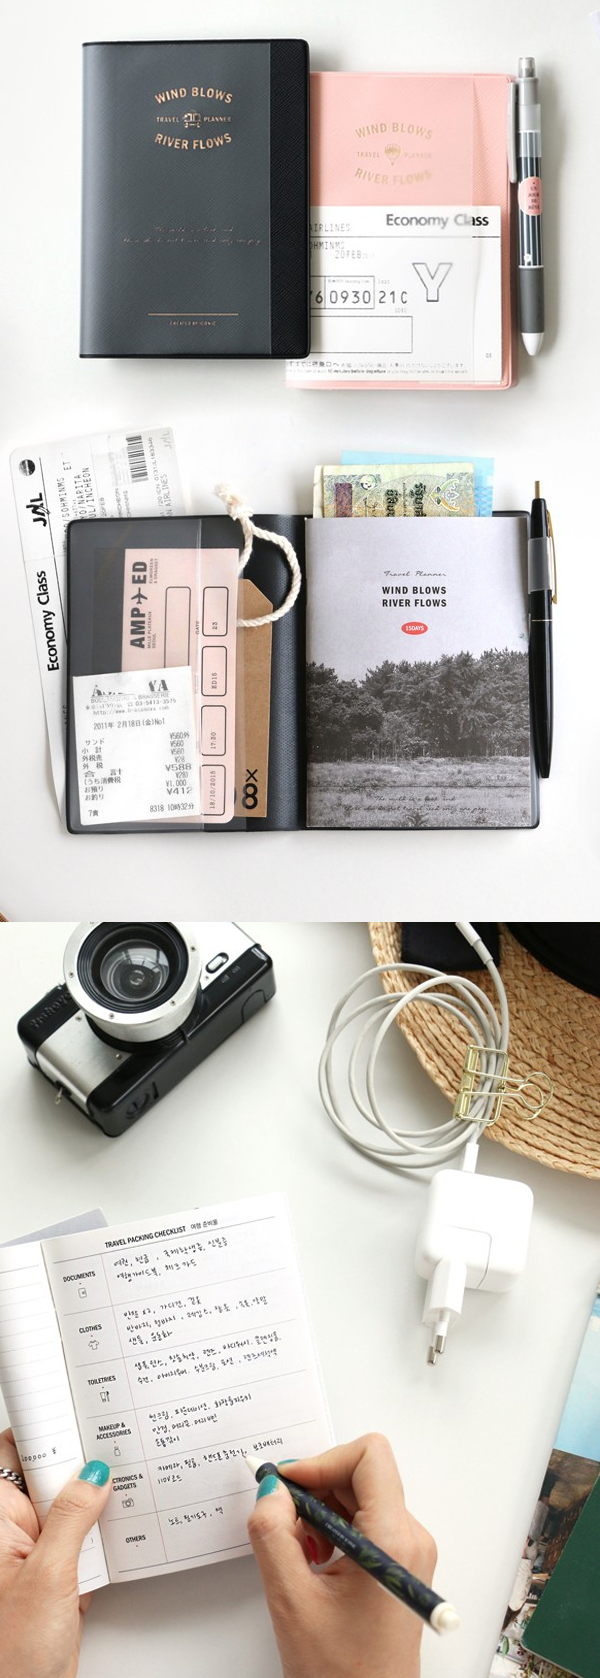 Make the most of your next trip? Use this beautiful Wind Blows Travel Planner to plan the best vacation or adventure! It comes with a cover and 7 pockets. Store your cards, tickets, photos, and even a passport or boarding pass! It has a pen holder, too! It's the easiest way to keep all your travel necessities together. Make checklists, track your expenses, and record each activity with this planner's endless features! Organize your travel life with this perfect travel companion. Check it…